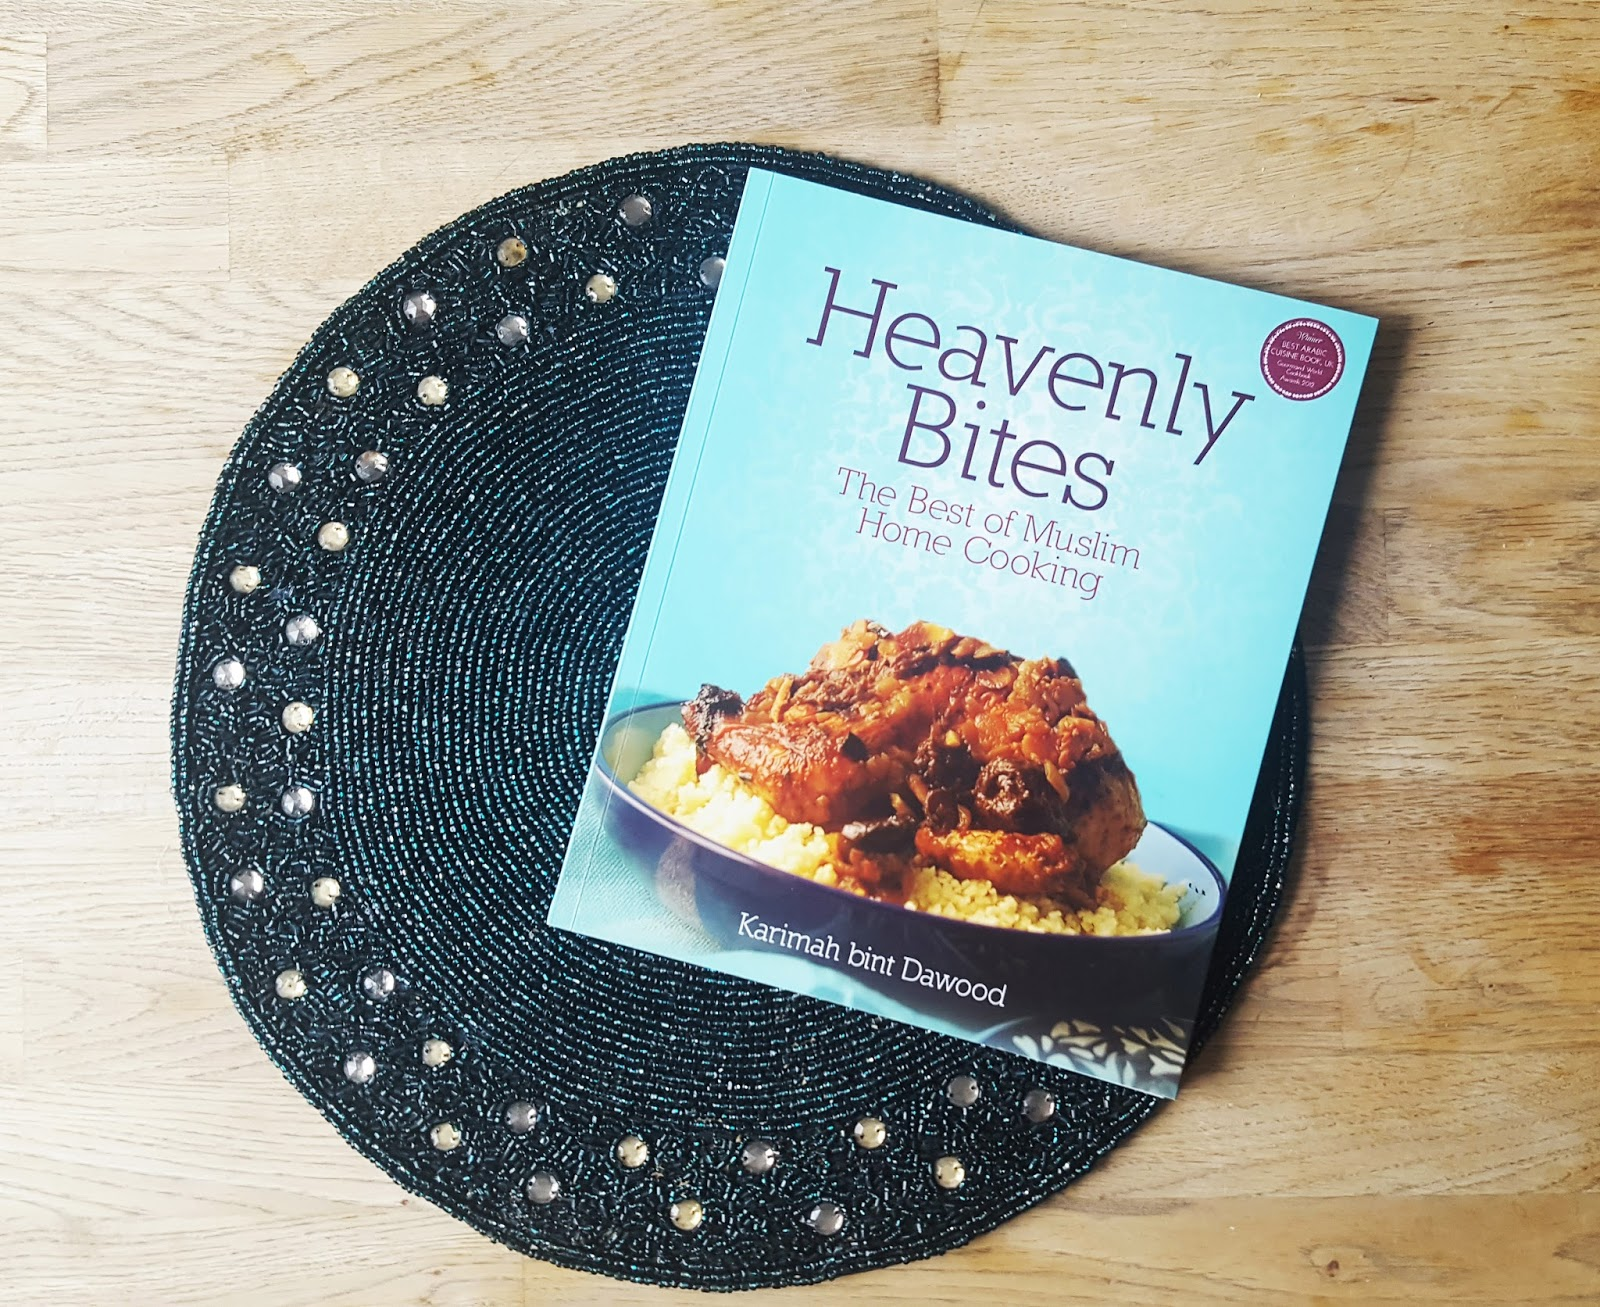 Heavenly bites cookbook